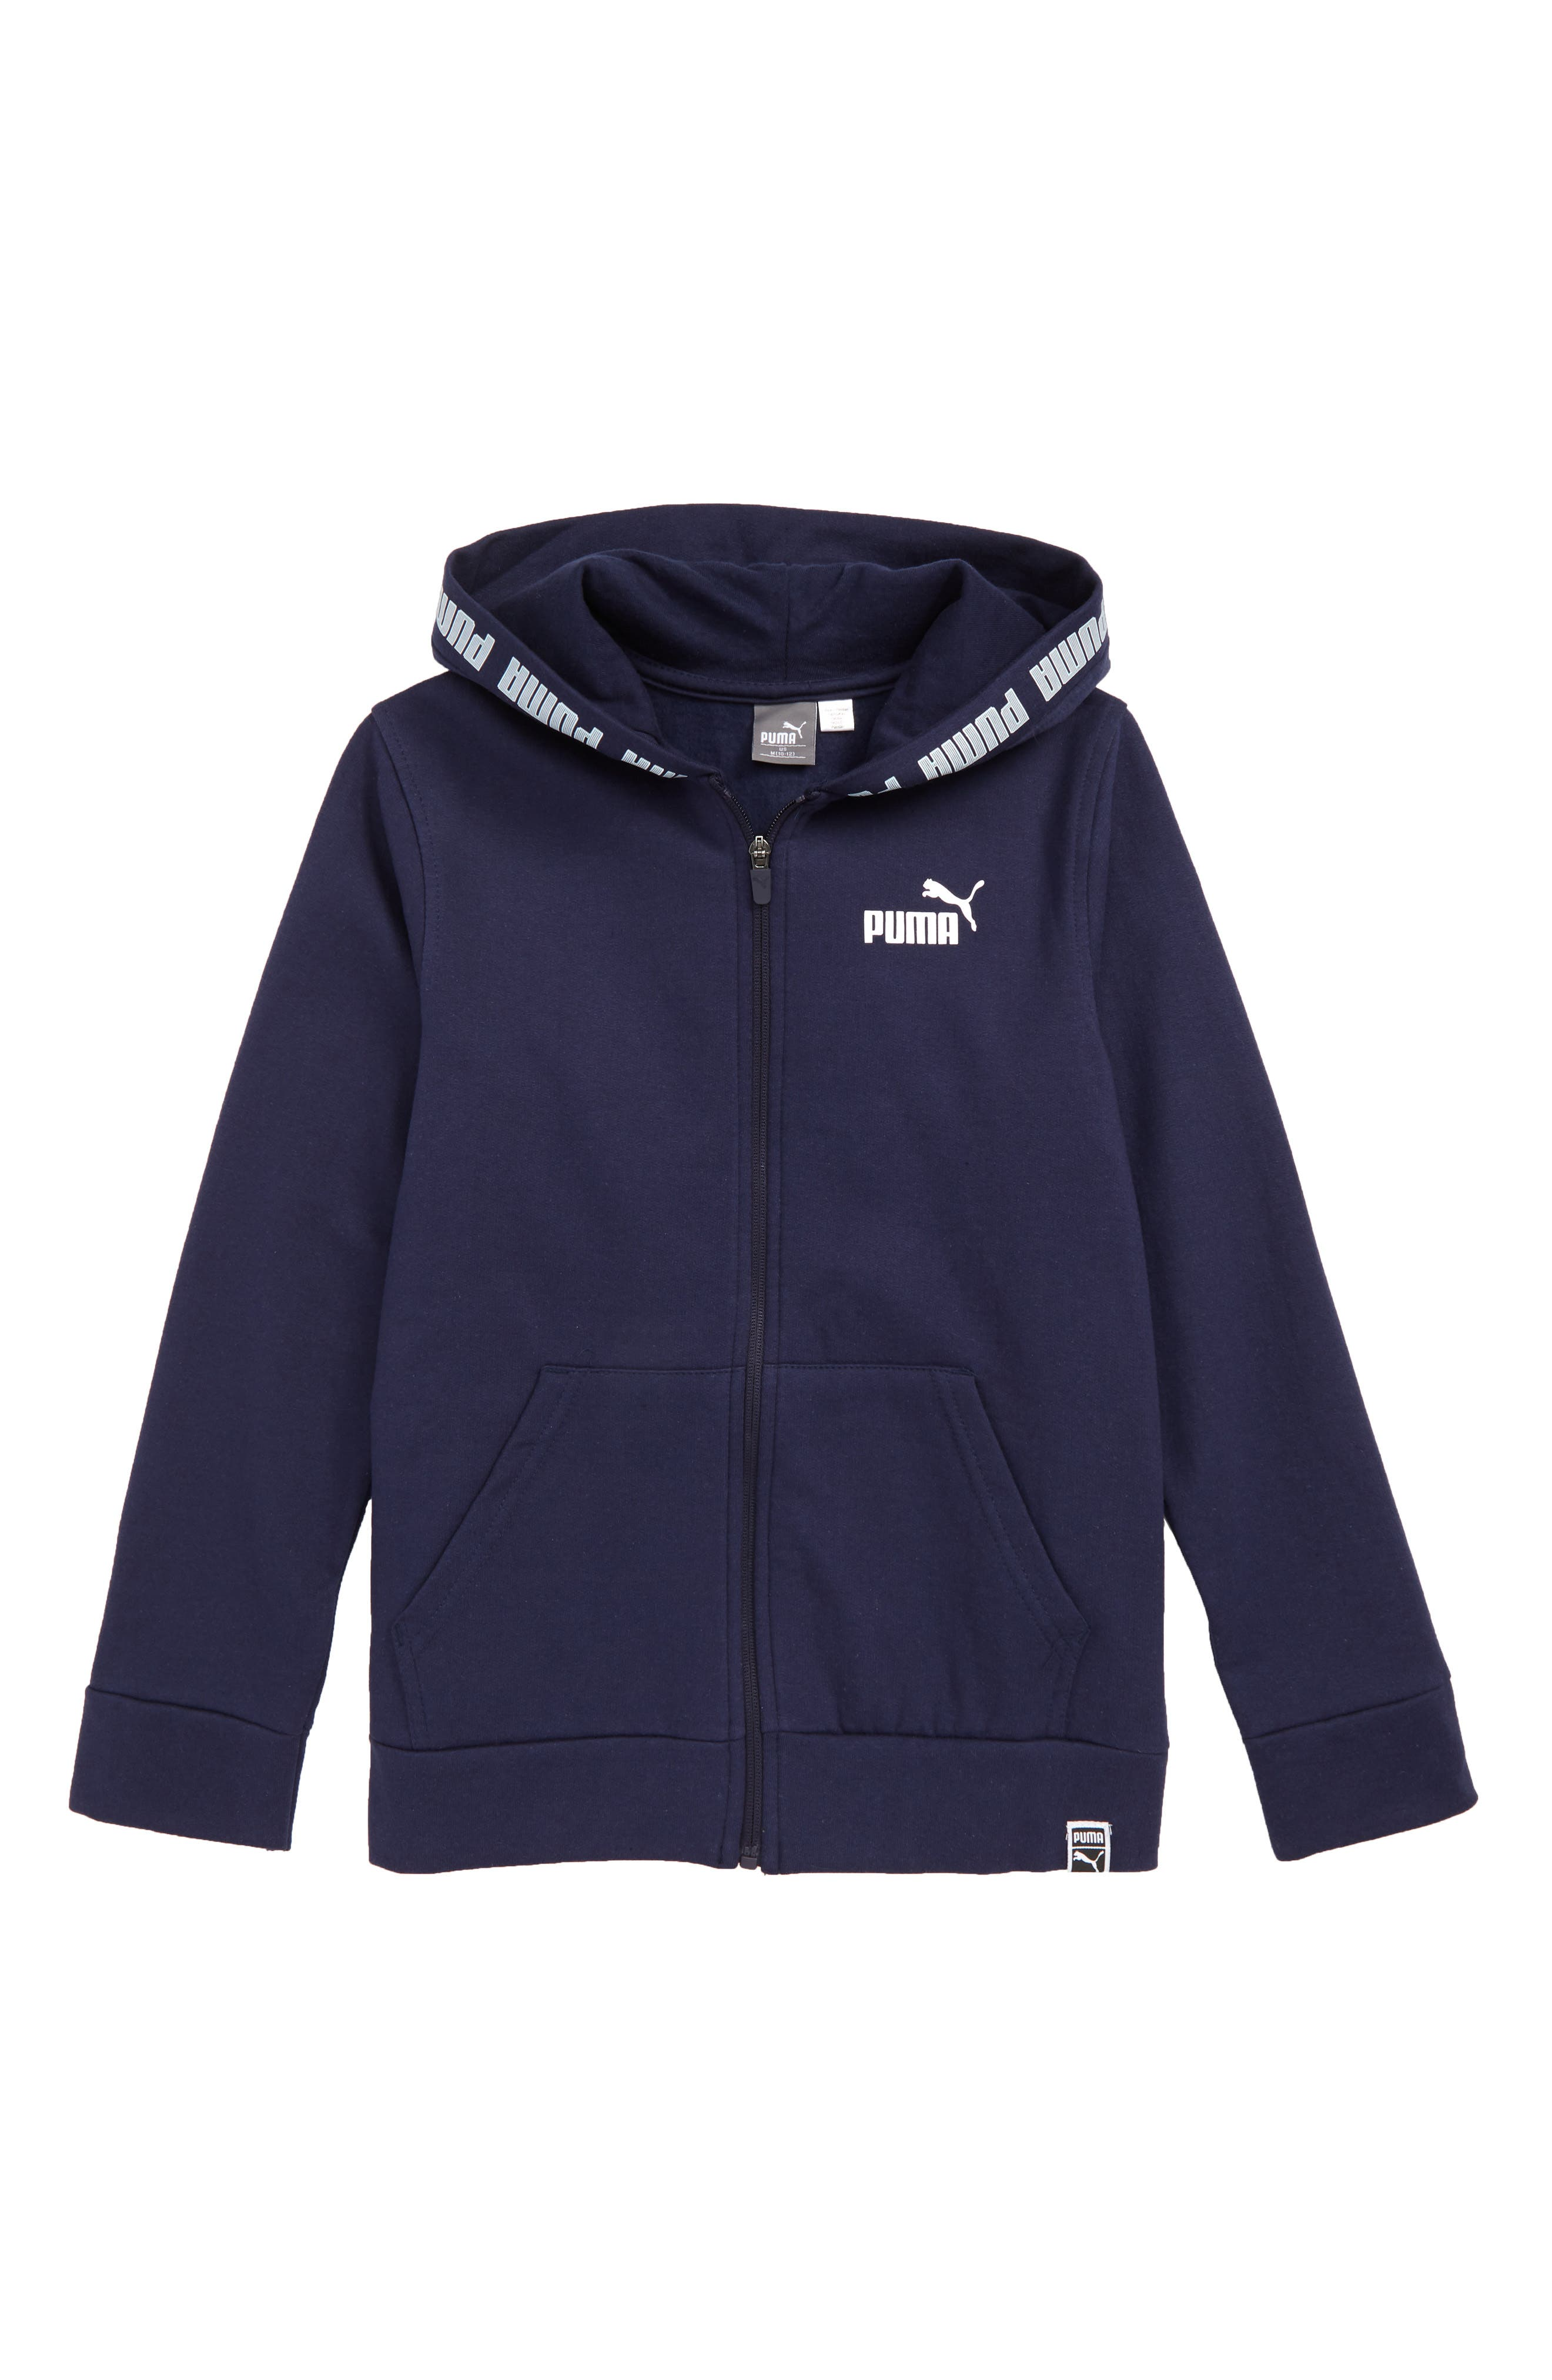 PUMA,                             Fleece Zip Hoodie,                             Main thumbnail 1, color,                             PEACOAT